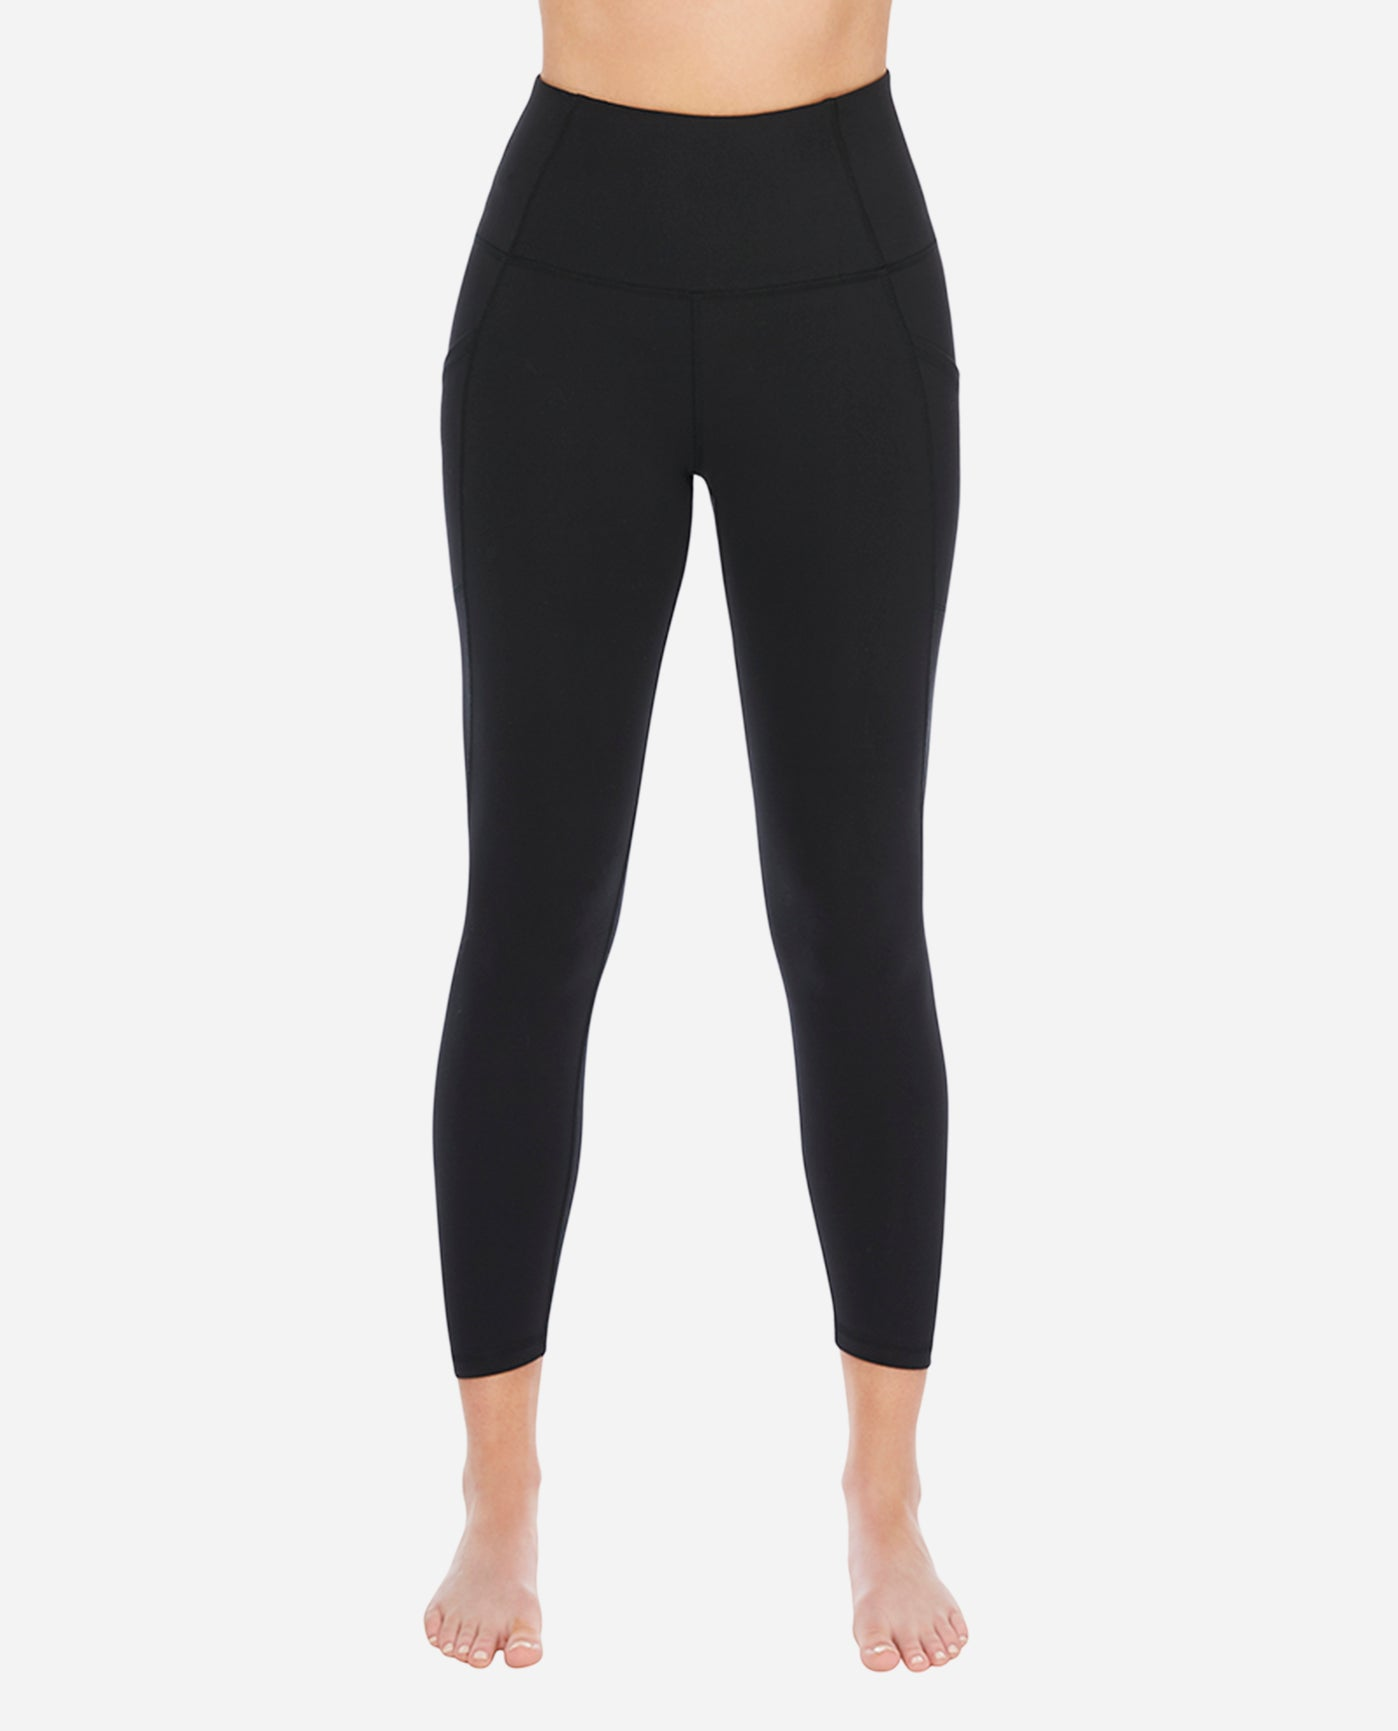 79ee9e2eca00d 7 8 Compression Legging